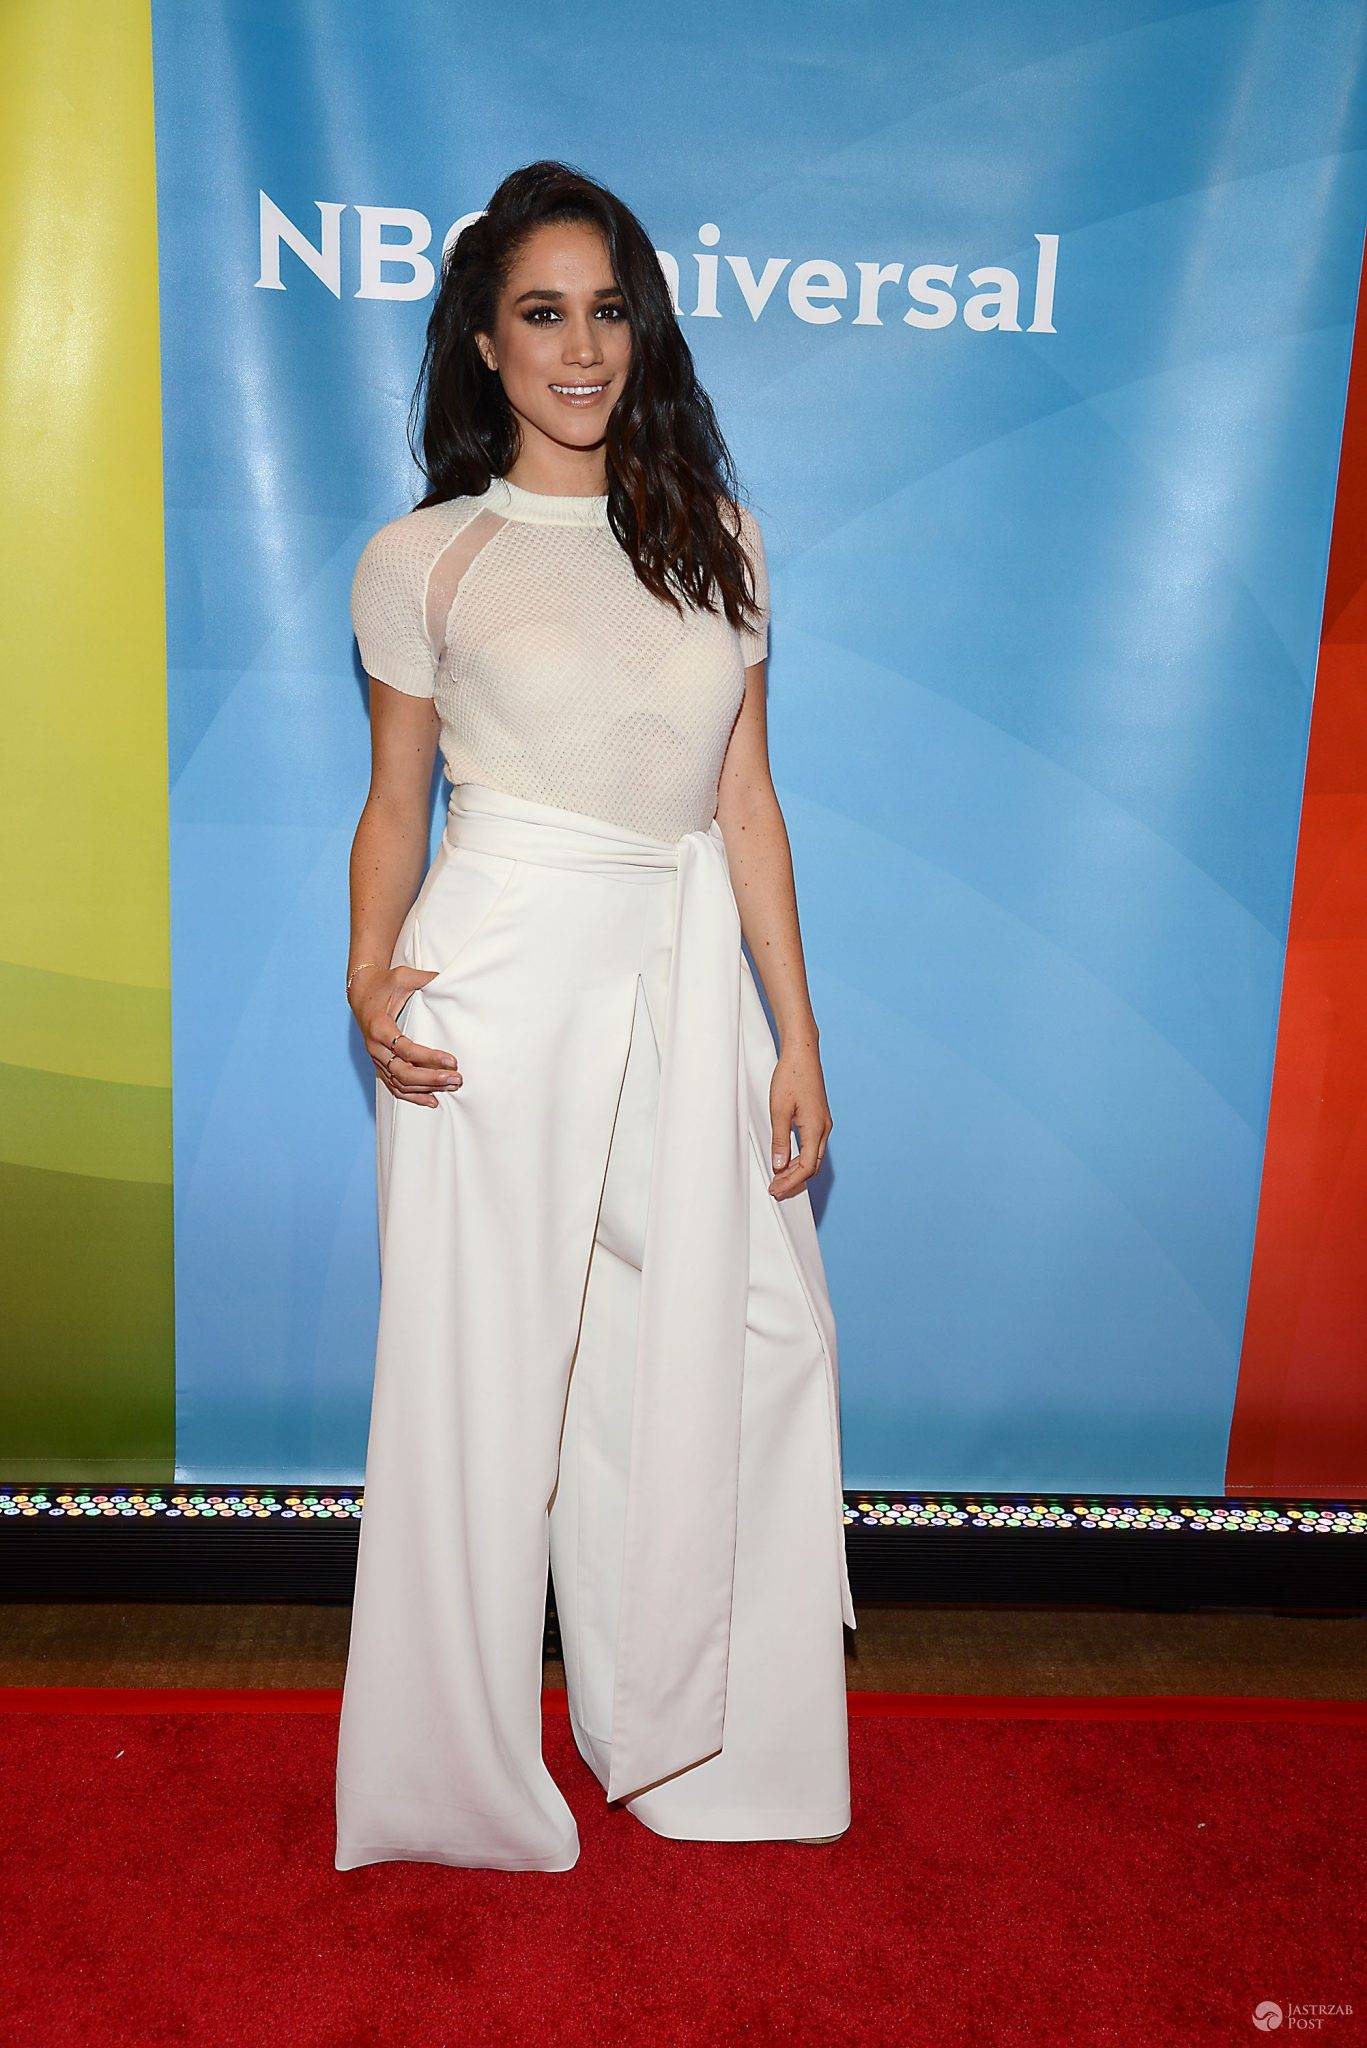 Meghan Markle attends the NBCUniversal New York Summer Press Day on June 24, 2015 at the Four Seasons Hotel in New York City, New York, USA.